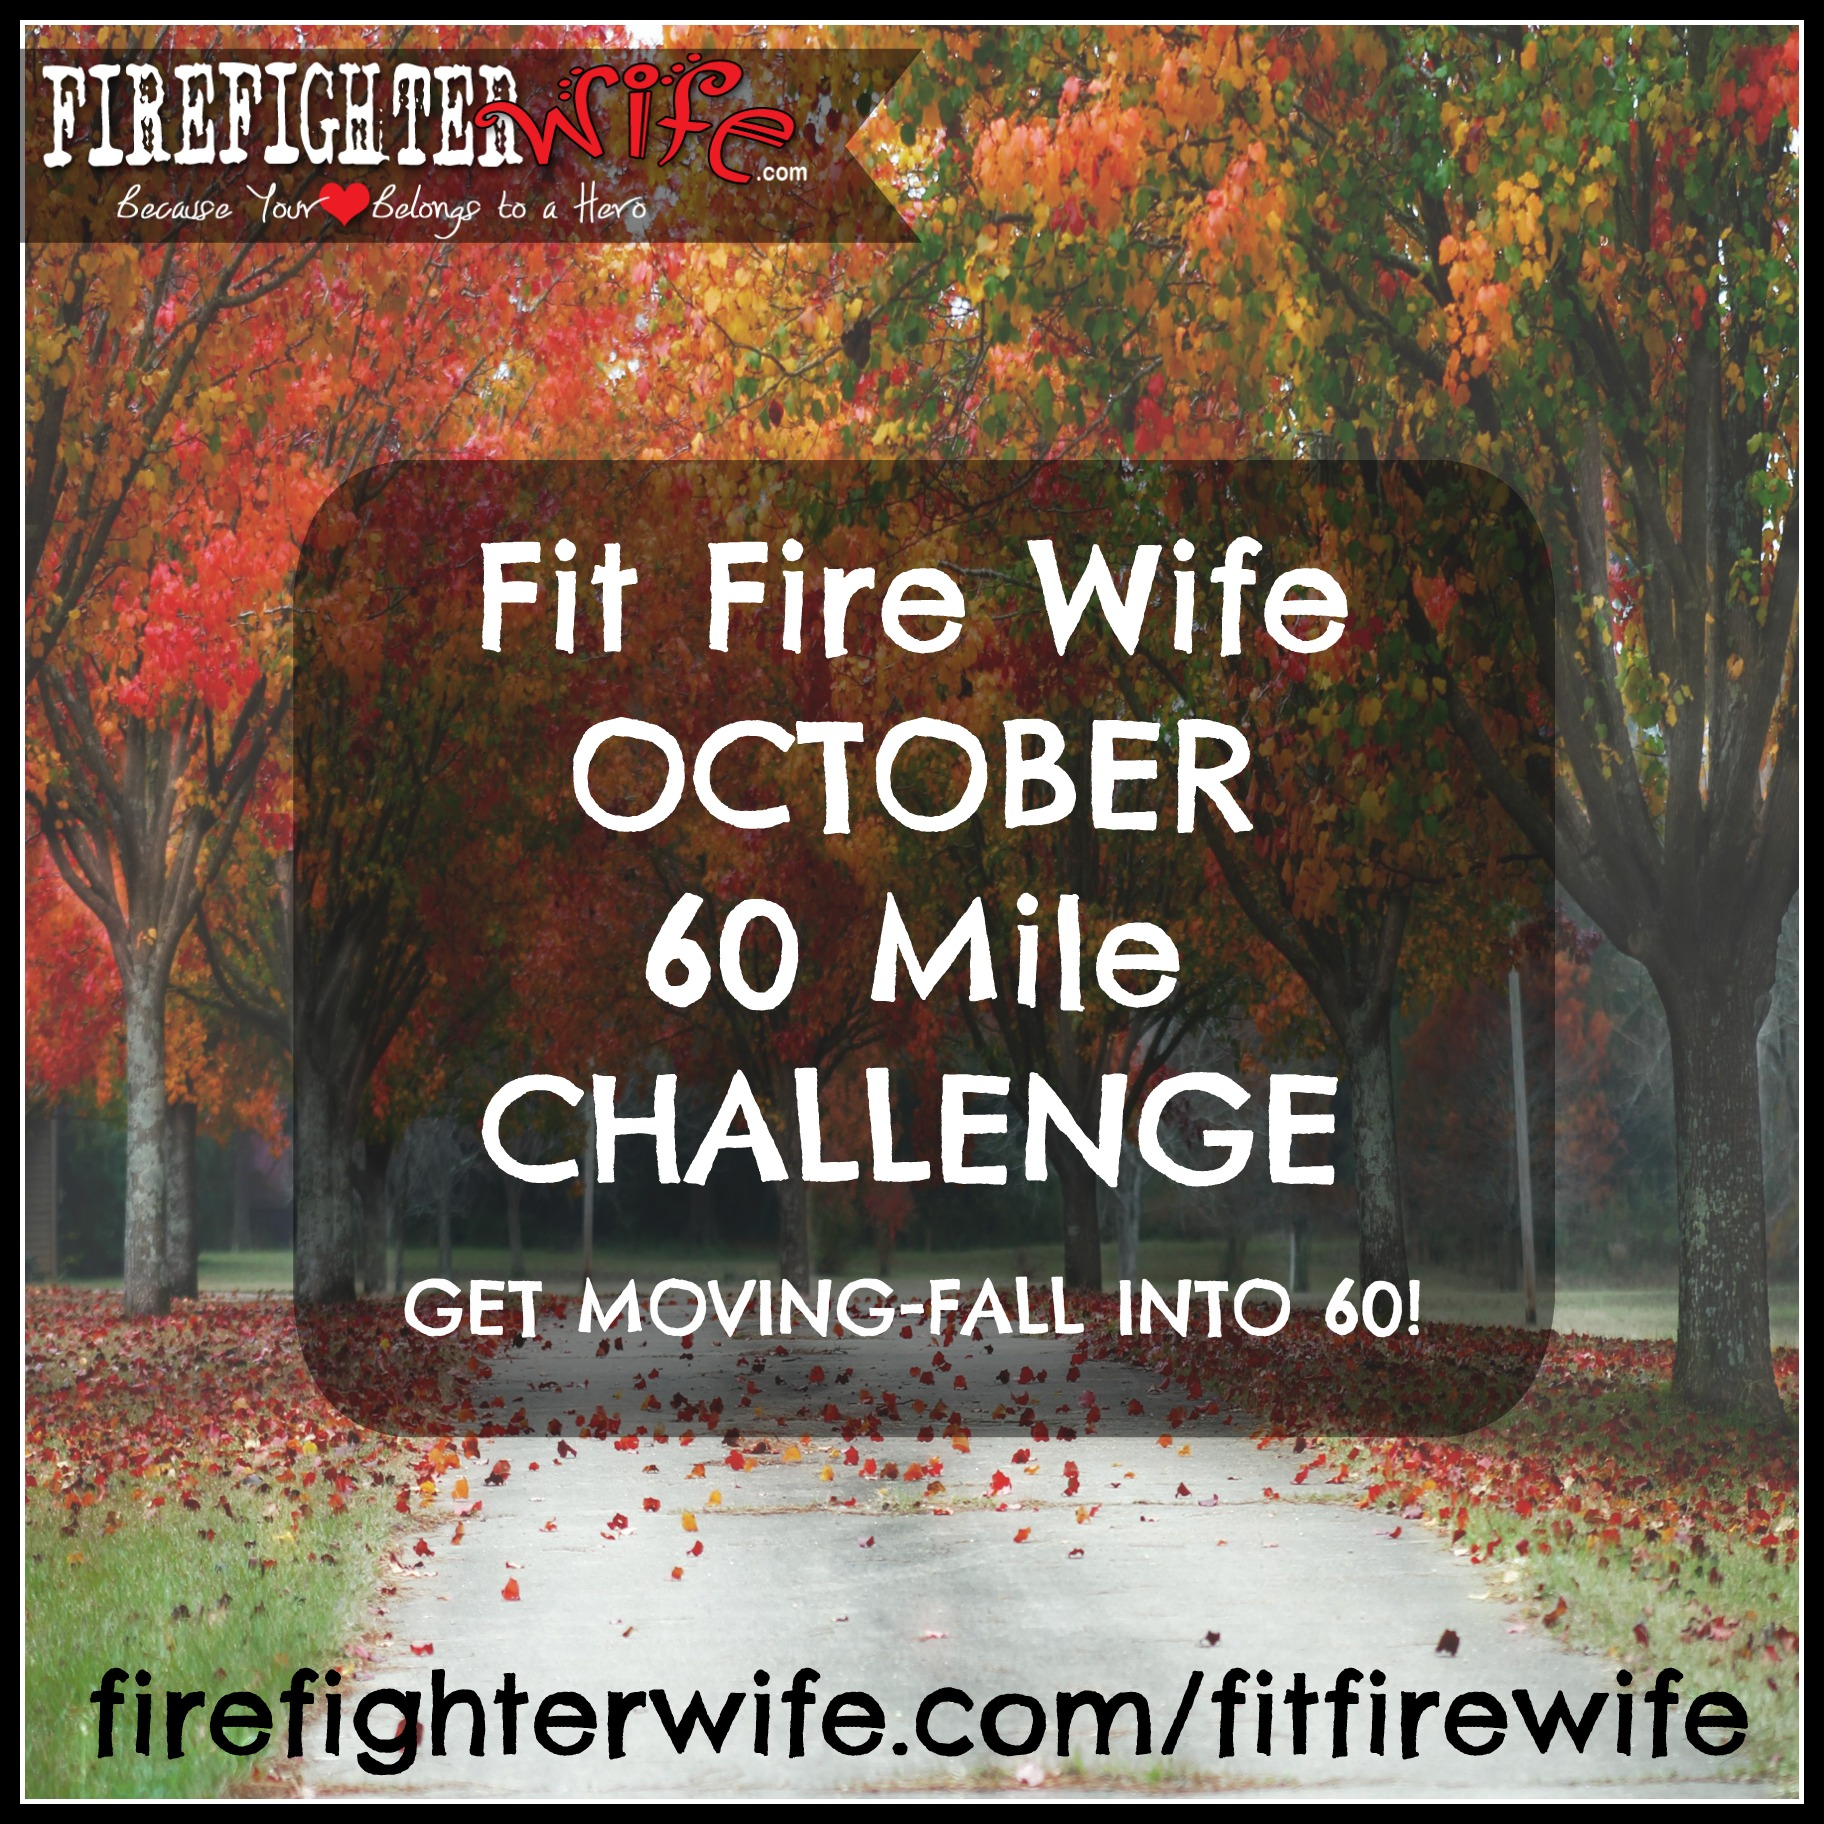 Fit Fire Wife October Challenge